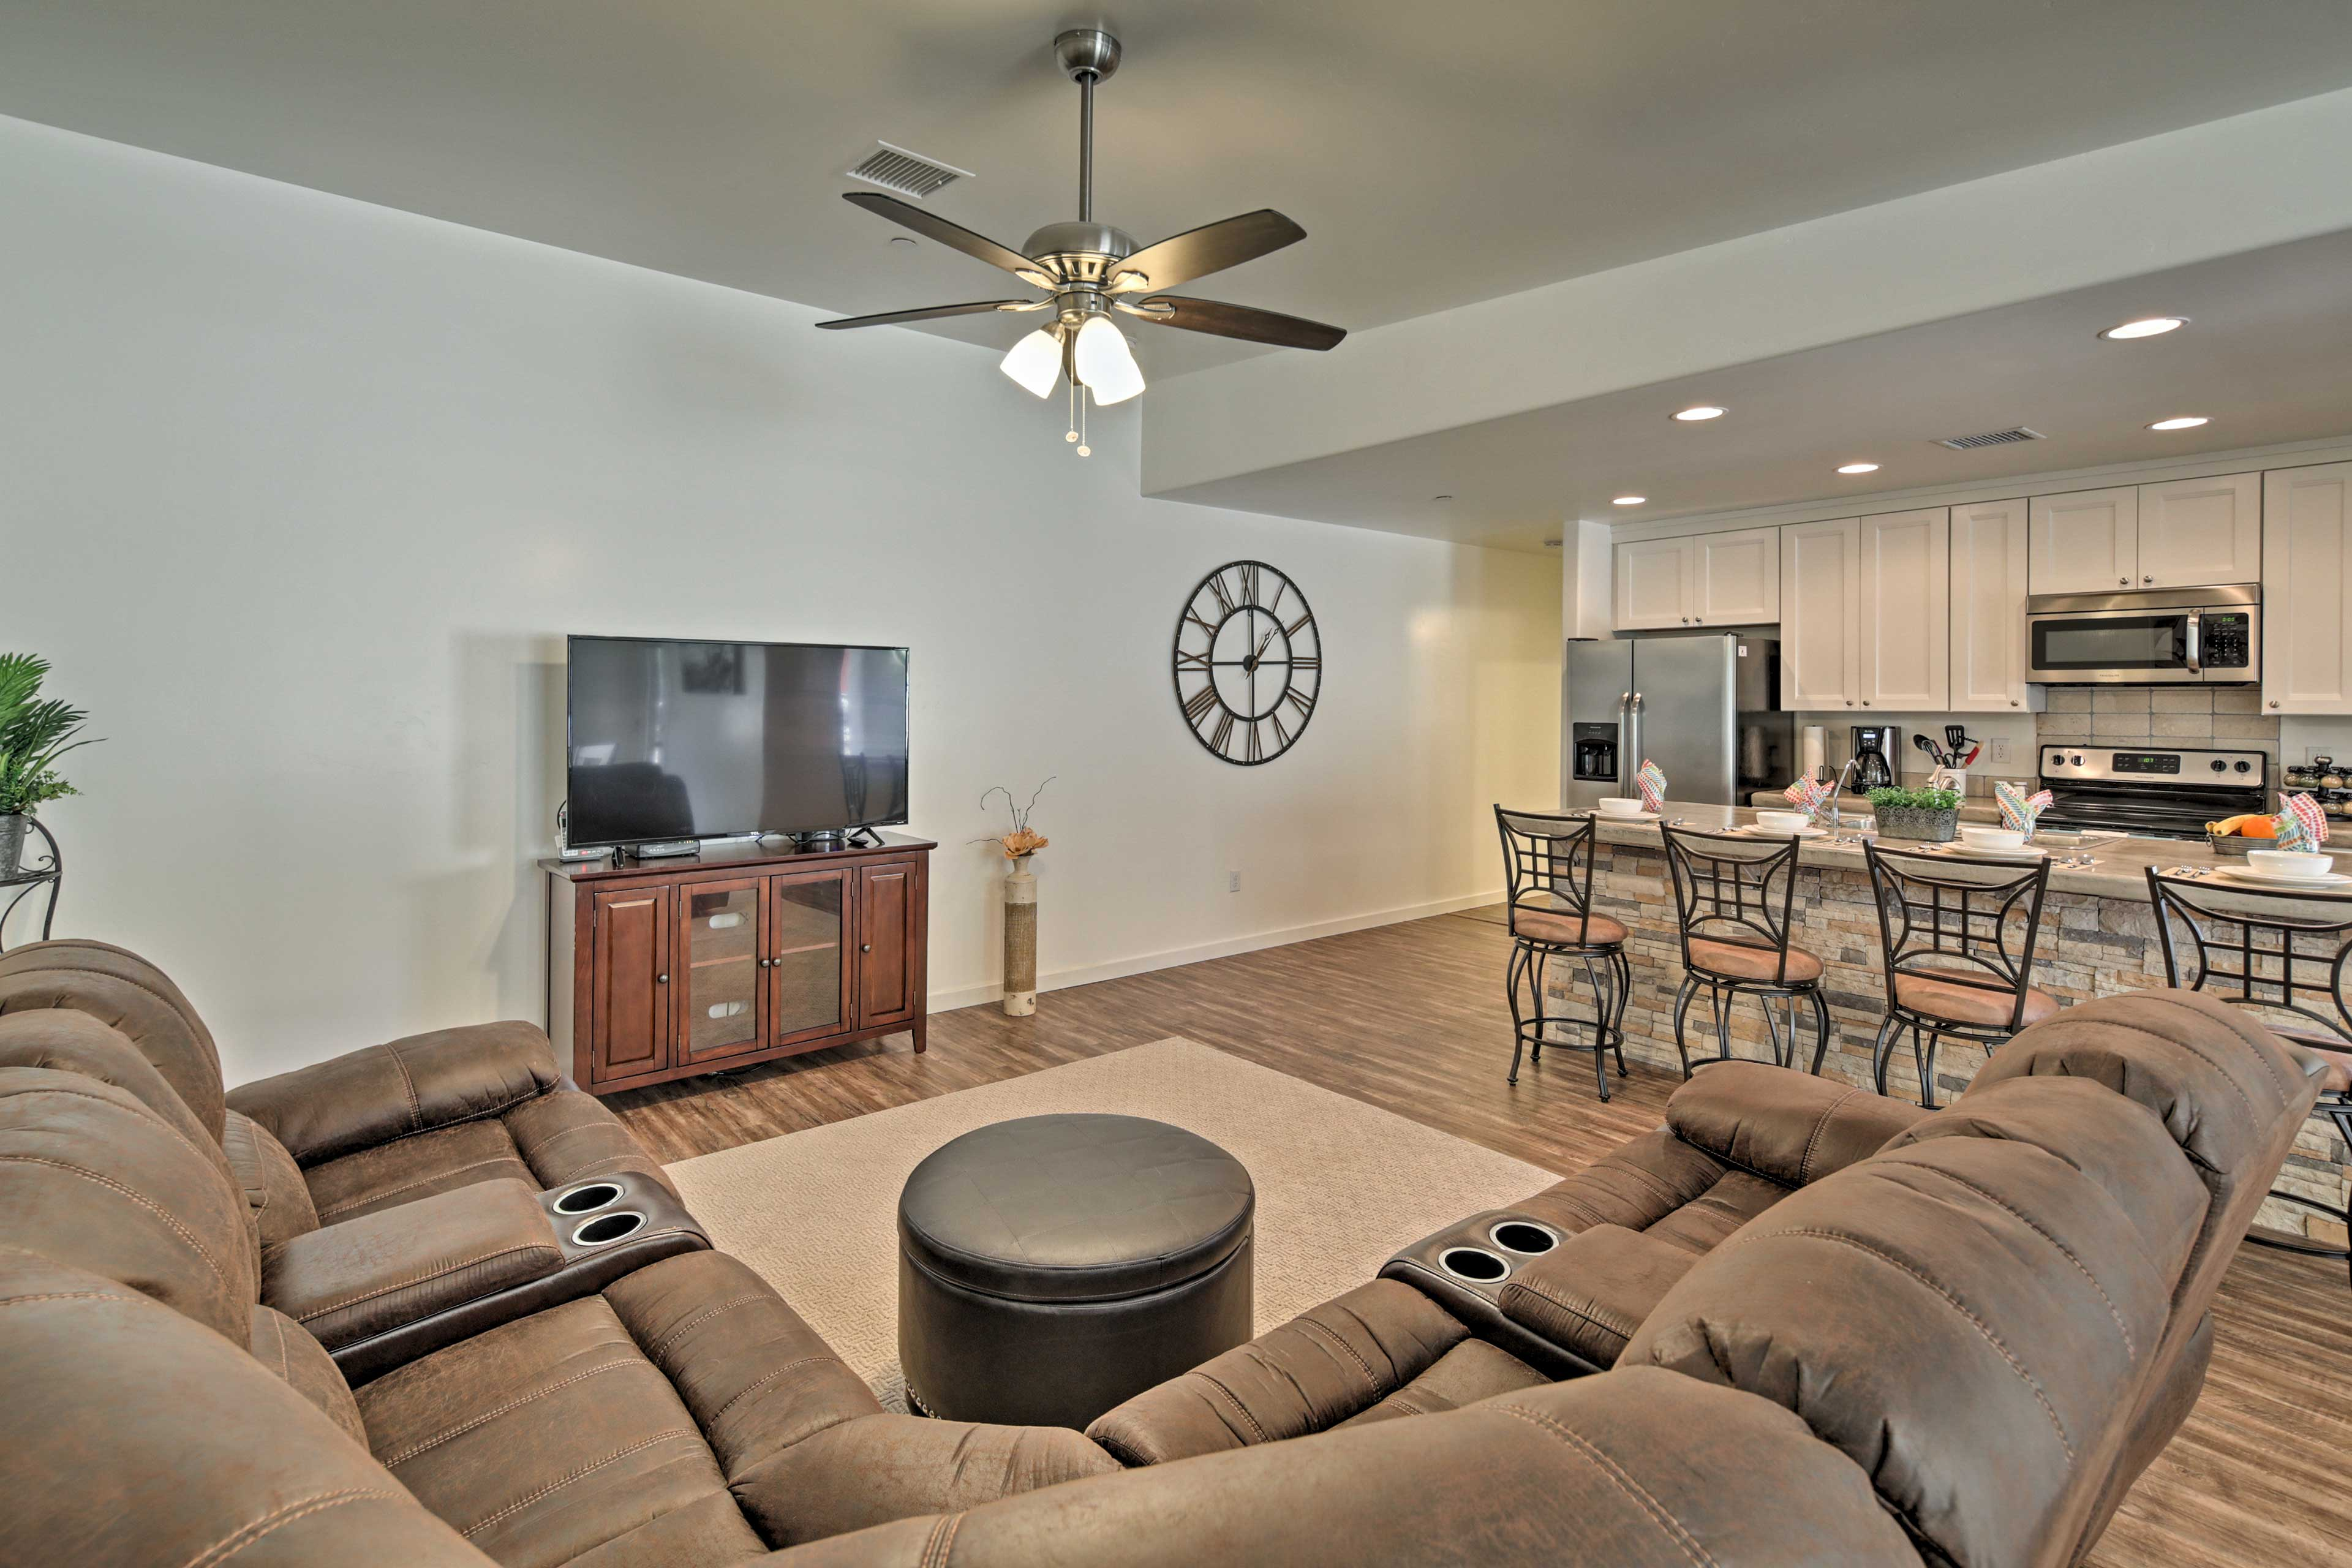 The open-concept layout creates a light and airy atmosphere that you'll love.